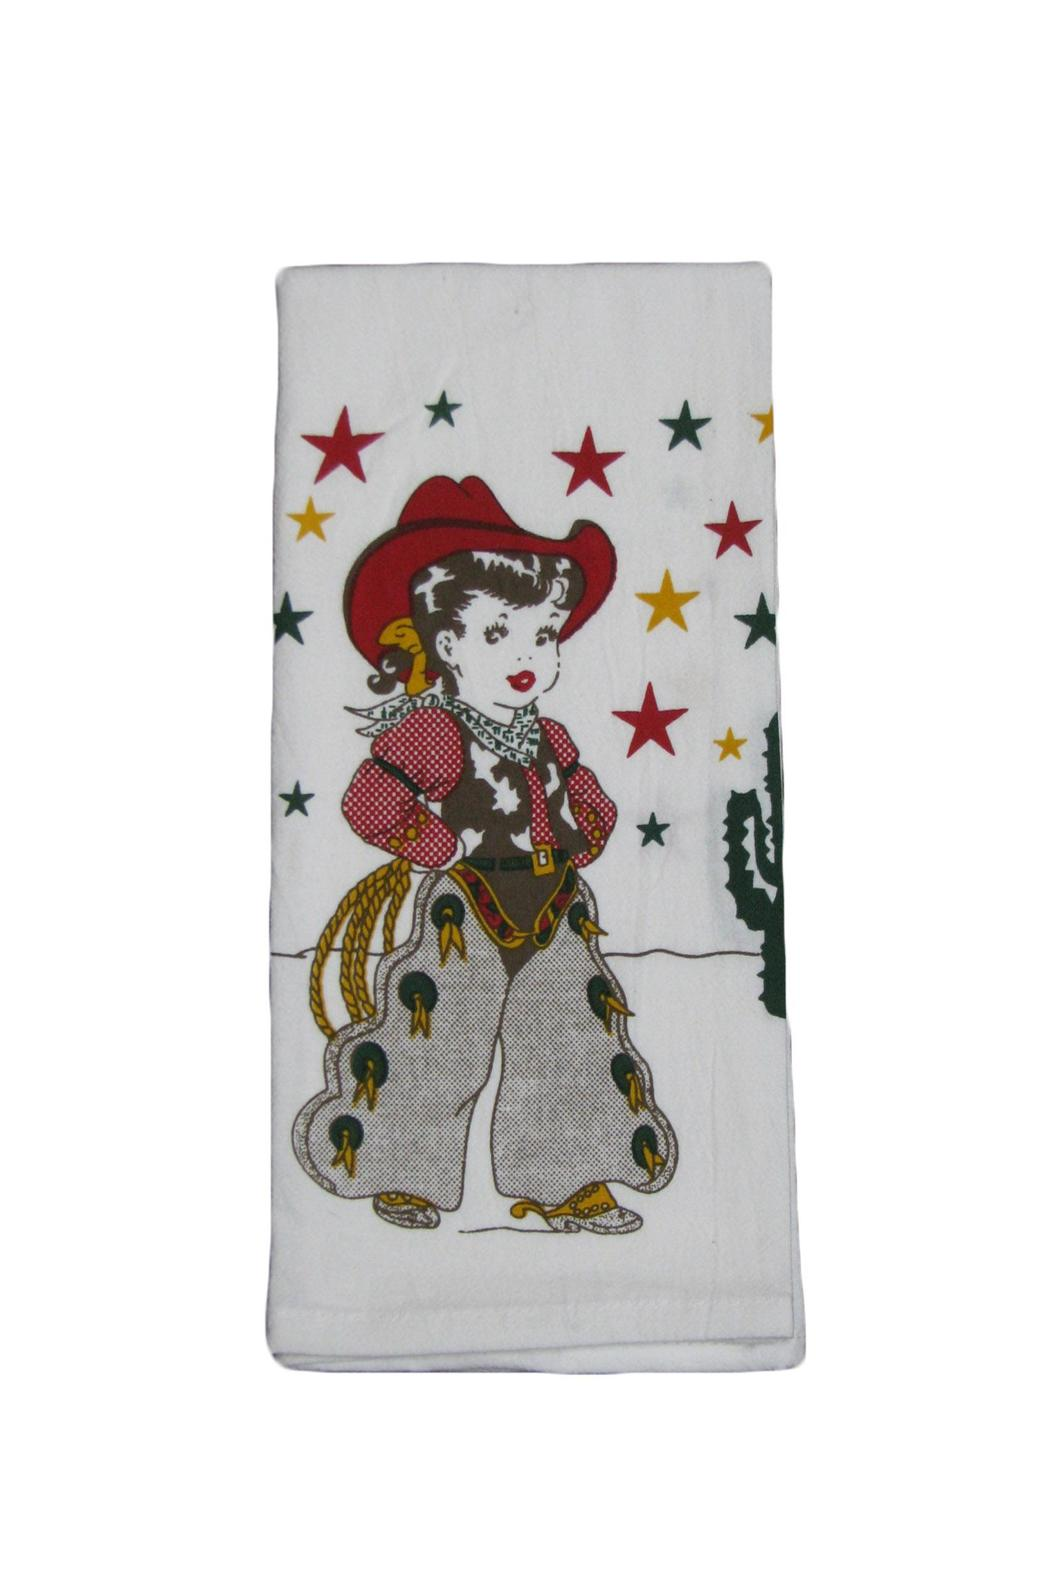 Red And White Kitchen Co Retro Kitchen Towel From Colorado By The